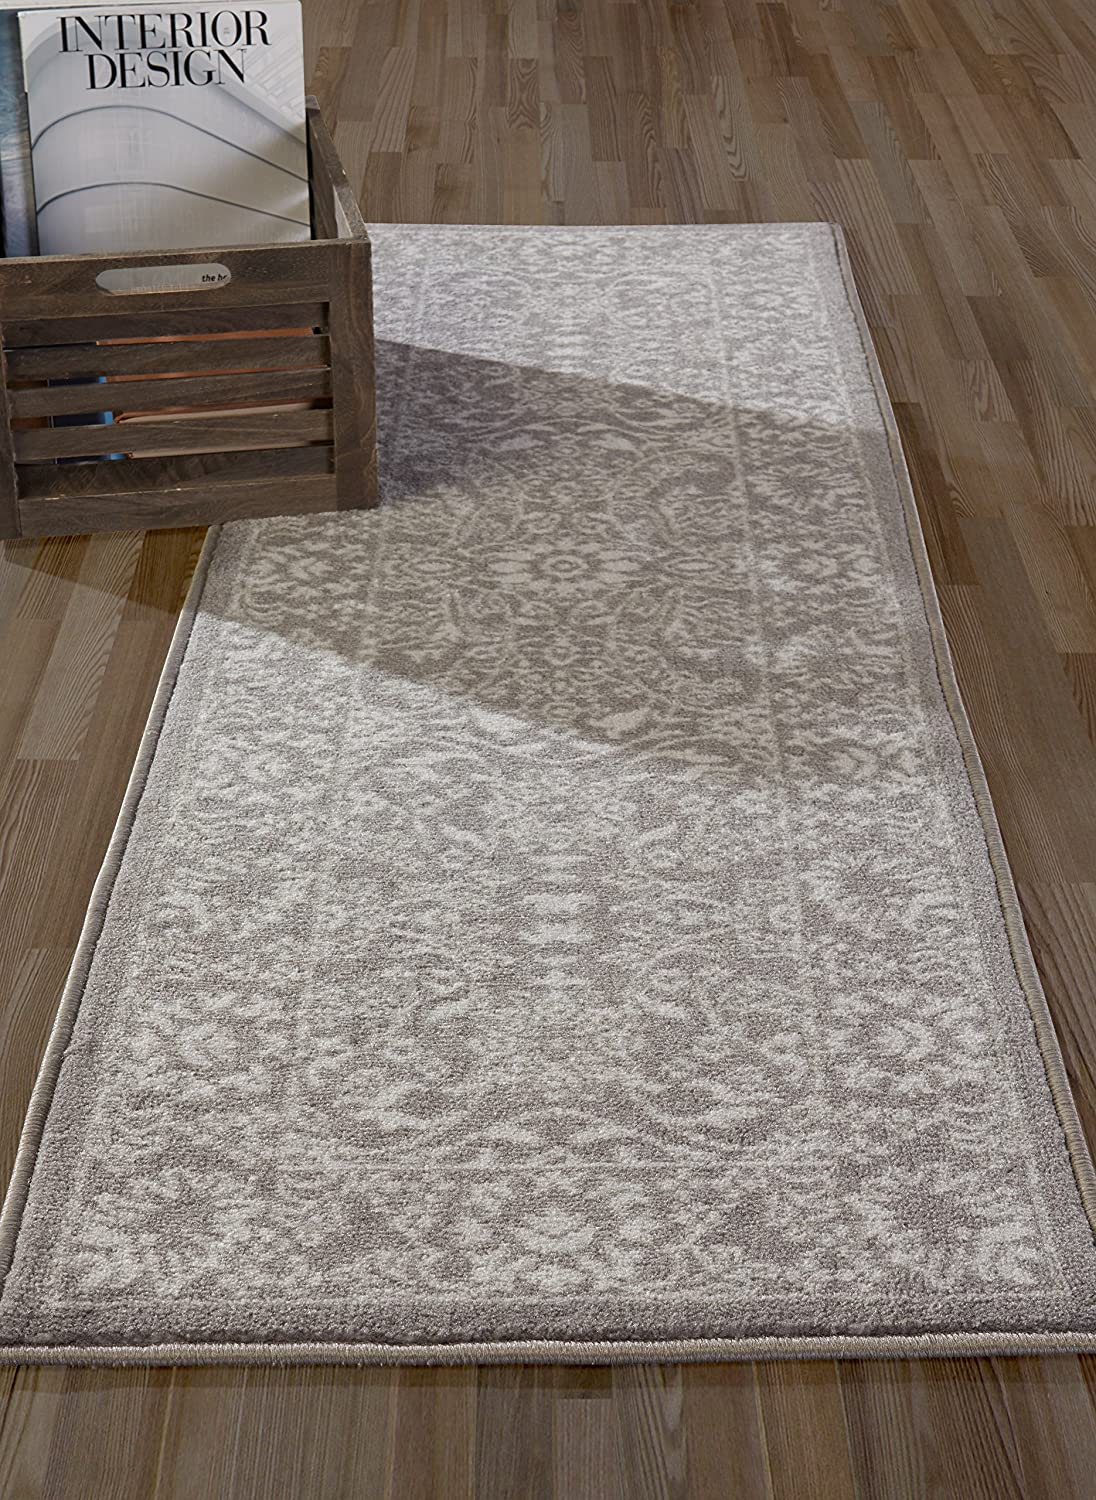 Diagona Designs Contemporary Paisley Design Non-Slip Kitchen 26 W x 72 L Bathroom Beige 26/'/' W x 72/'/' L ANN1062-2X6 Hallway Area Rug Runner